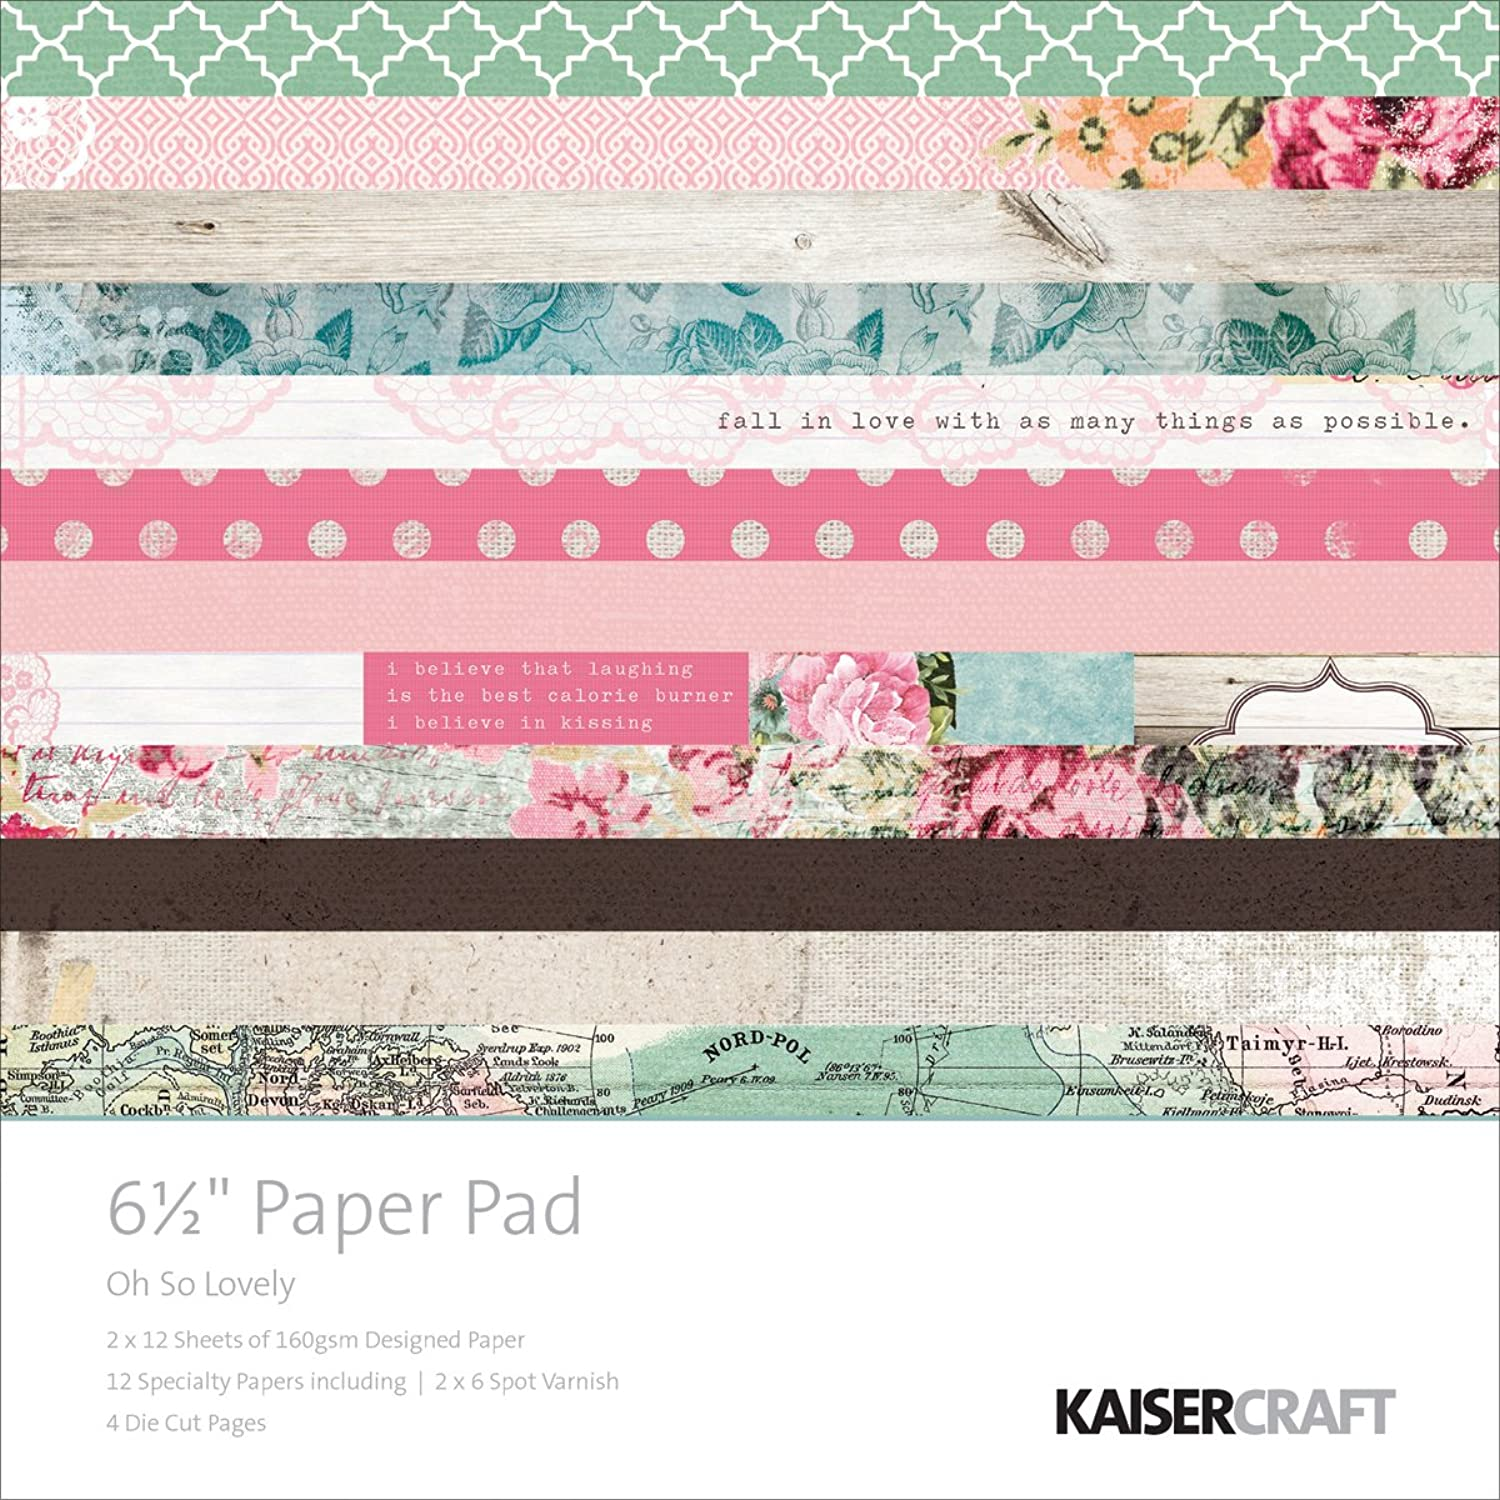 Kaiser Craft Oh So Lovely Papier Pad B00RGFWIZ2 | | | Up-to-date Styling  e3e4d9